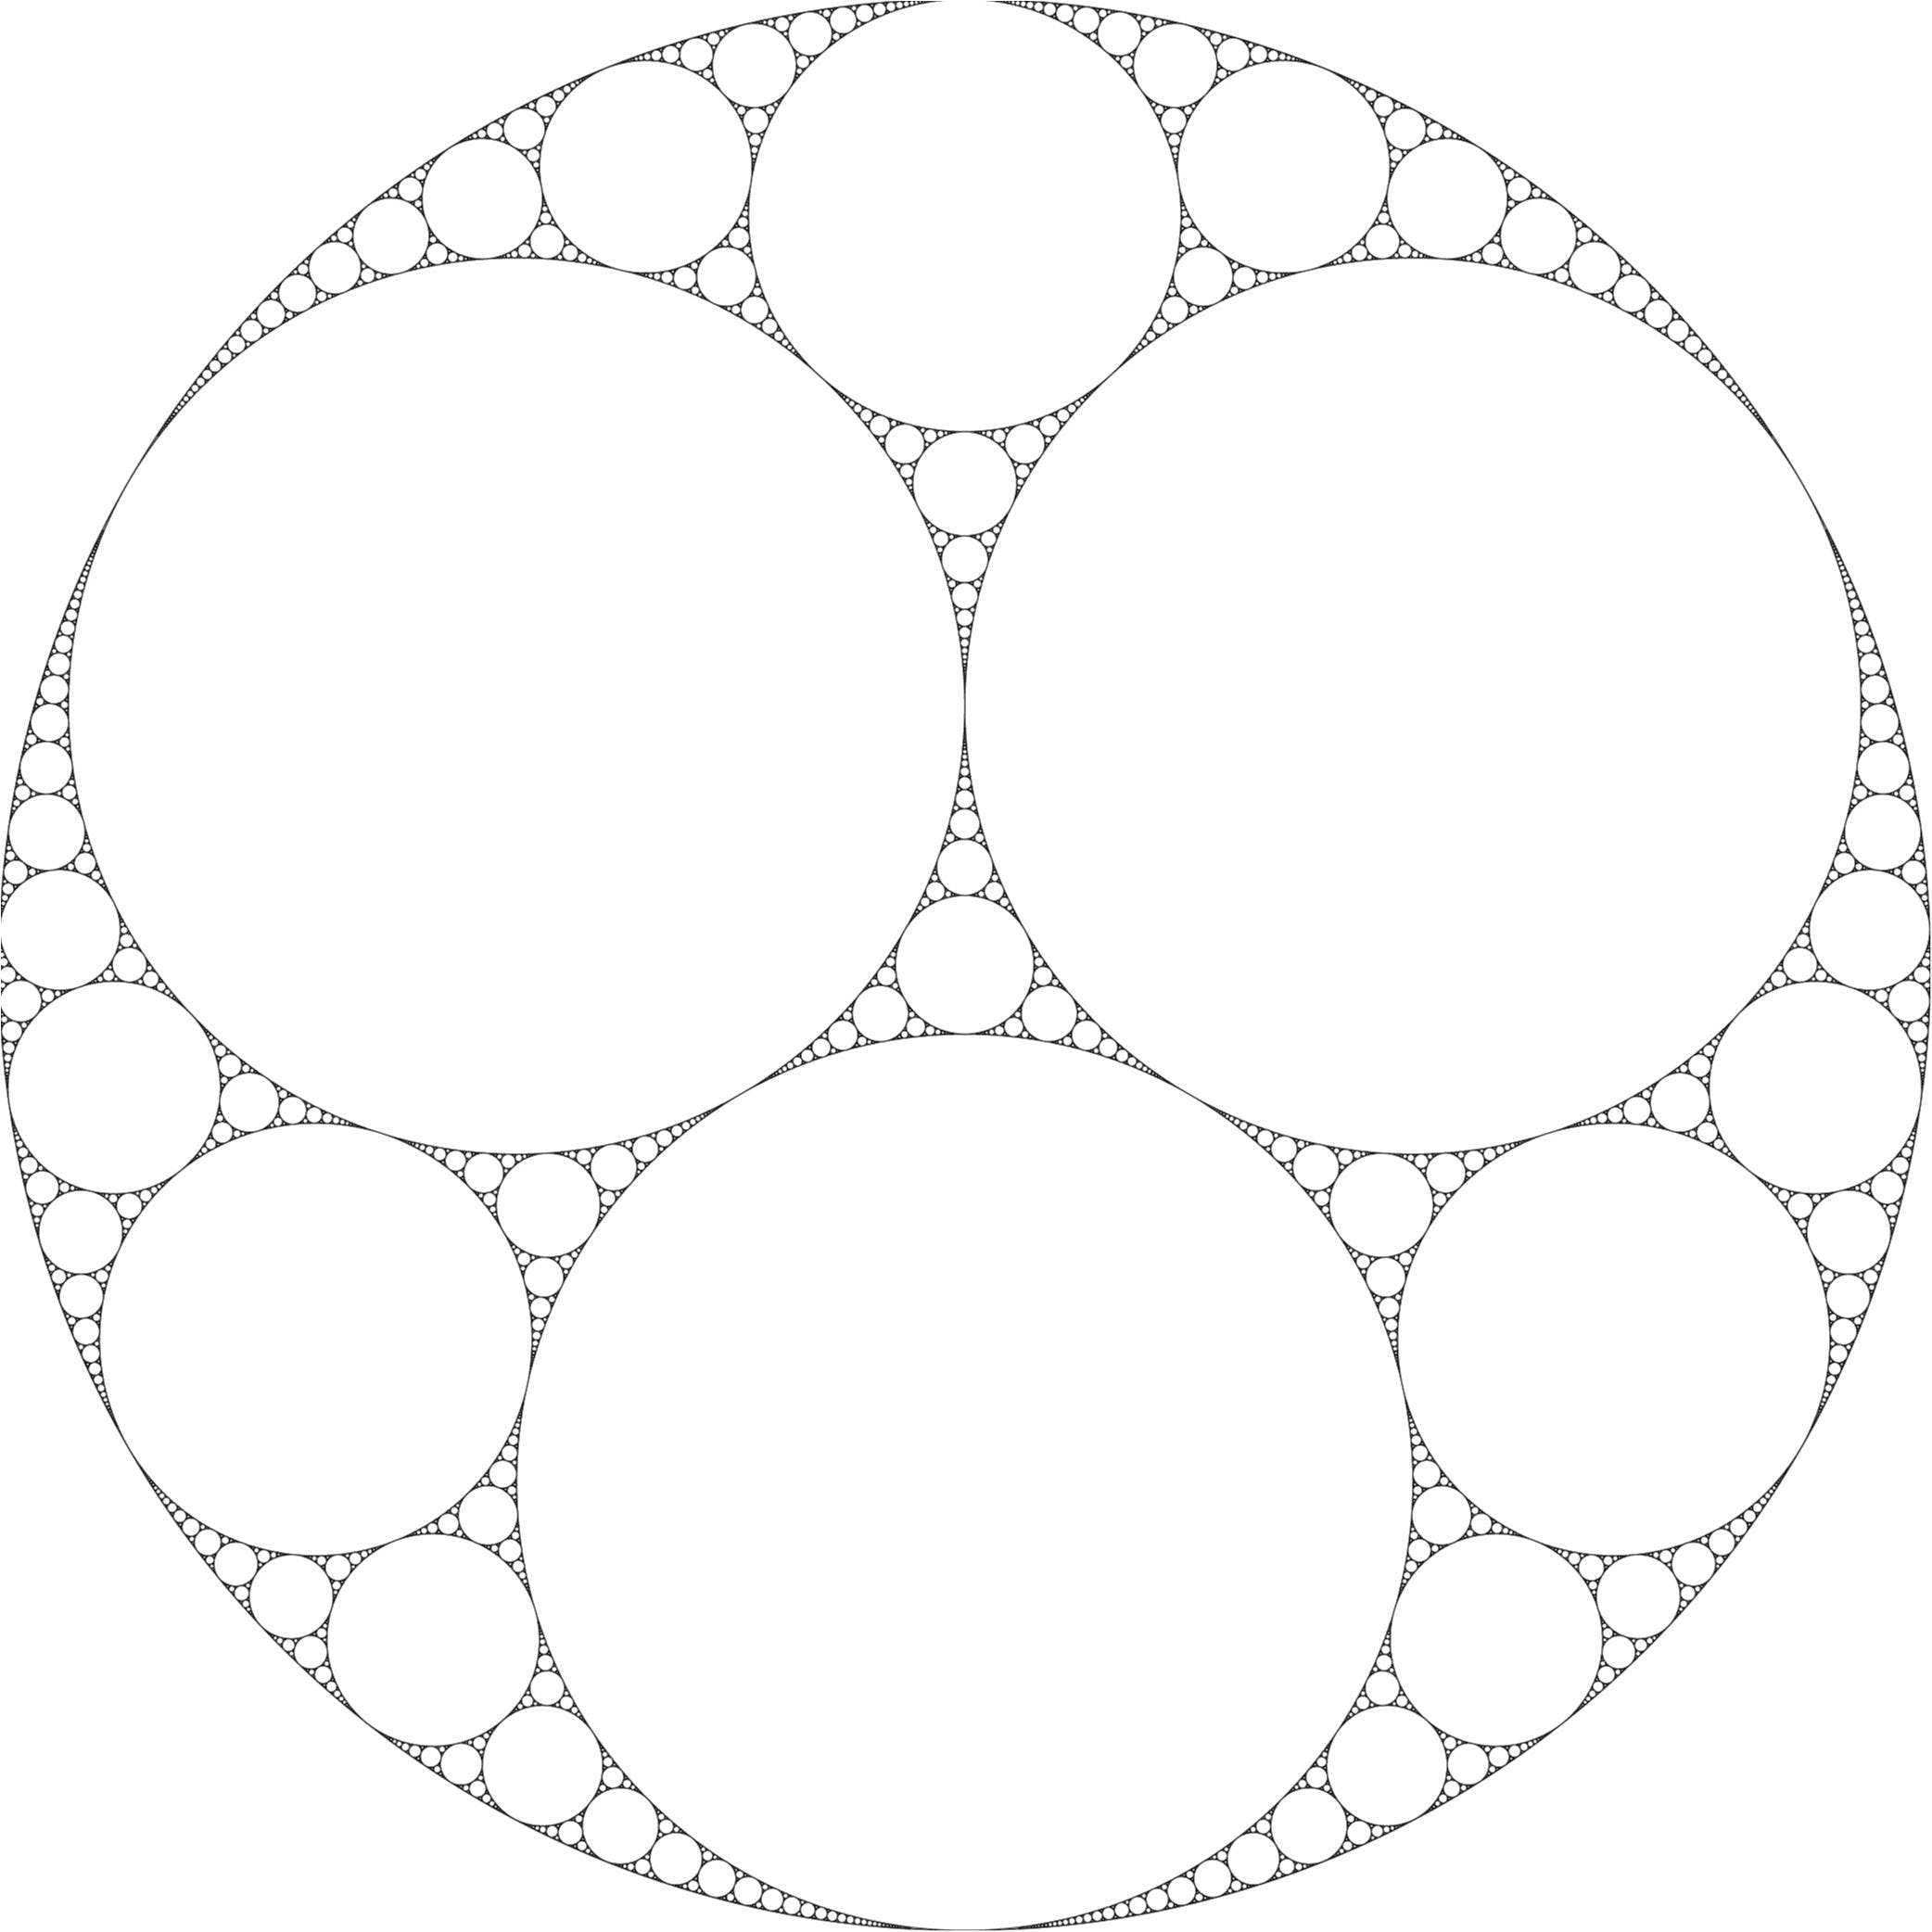 Estimate for the fractal dimension of the Apollonian gasket in d dimensions